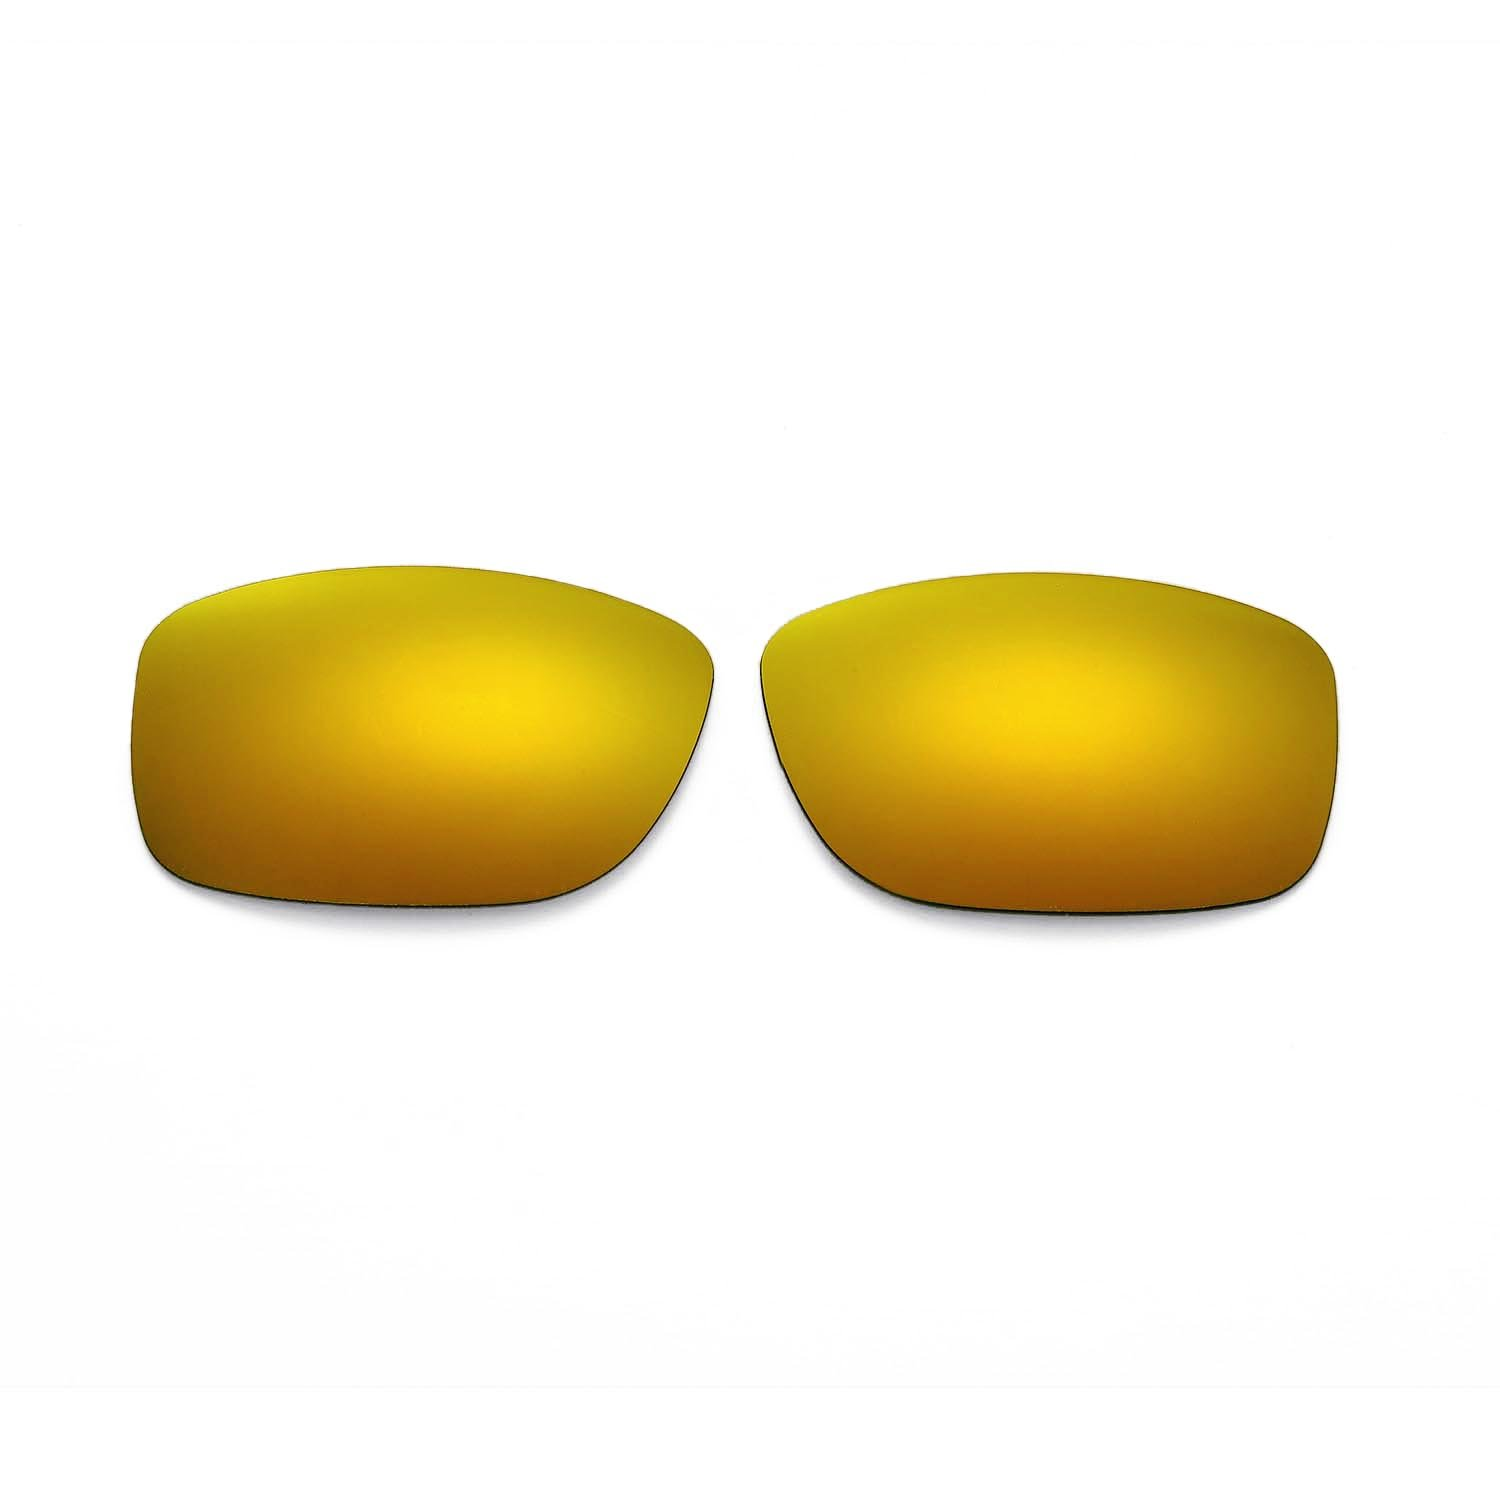 7ffb99b7074 Amazon.com   Walleva Replacement Lenses for Oakley Jupiter Squared  Sunglasses - Multiple Options Available (24K - Polarized)   Sports    Outdoors